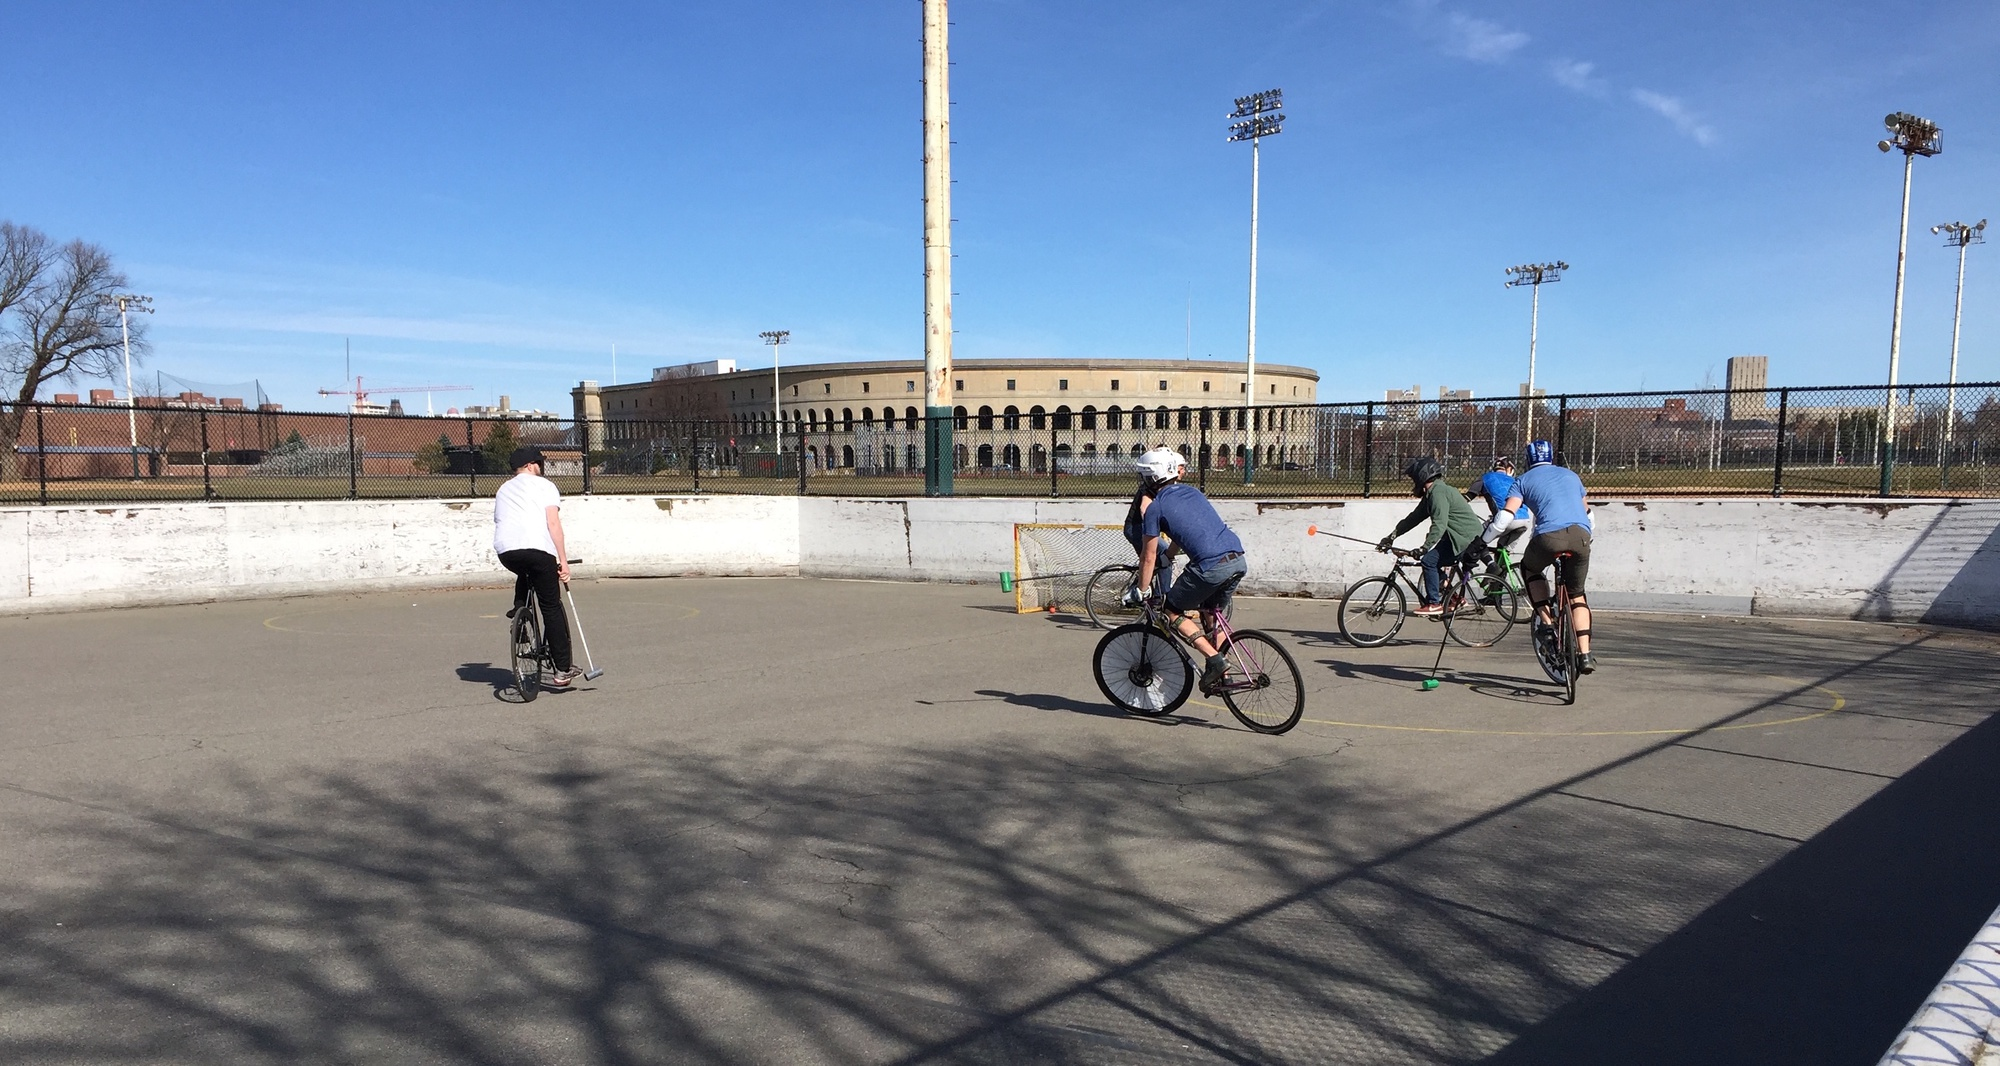 Members of the Boston Bike Polo club play an afternoon game of bike polo on the Smith Field park hockey court in Allston.